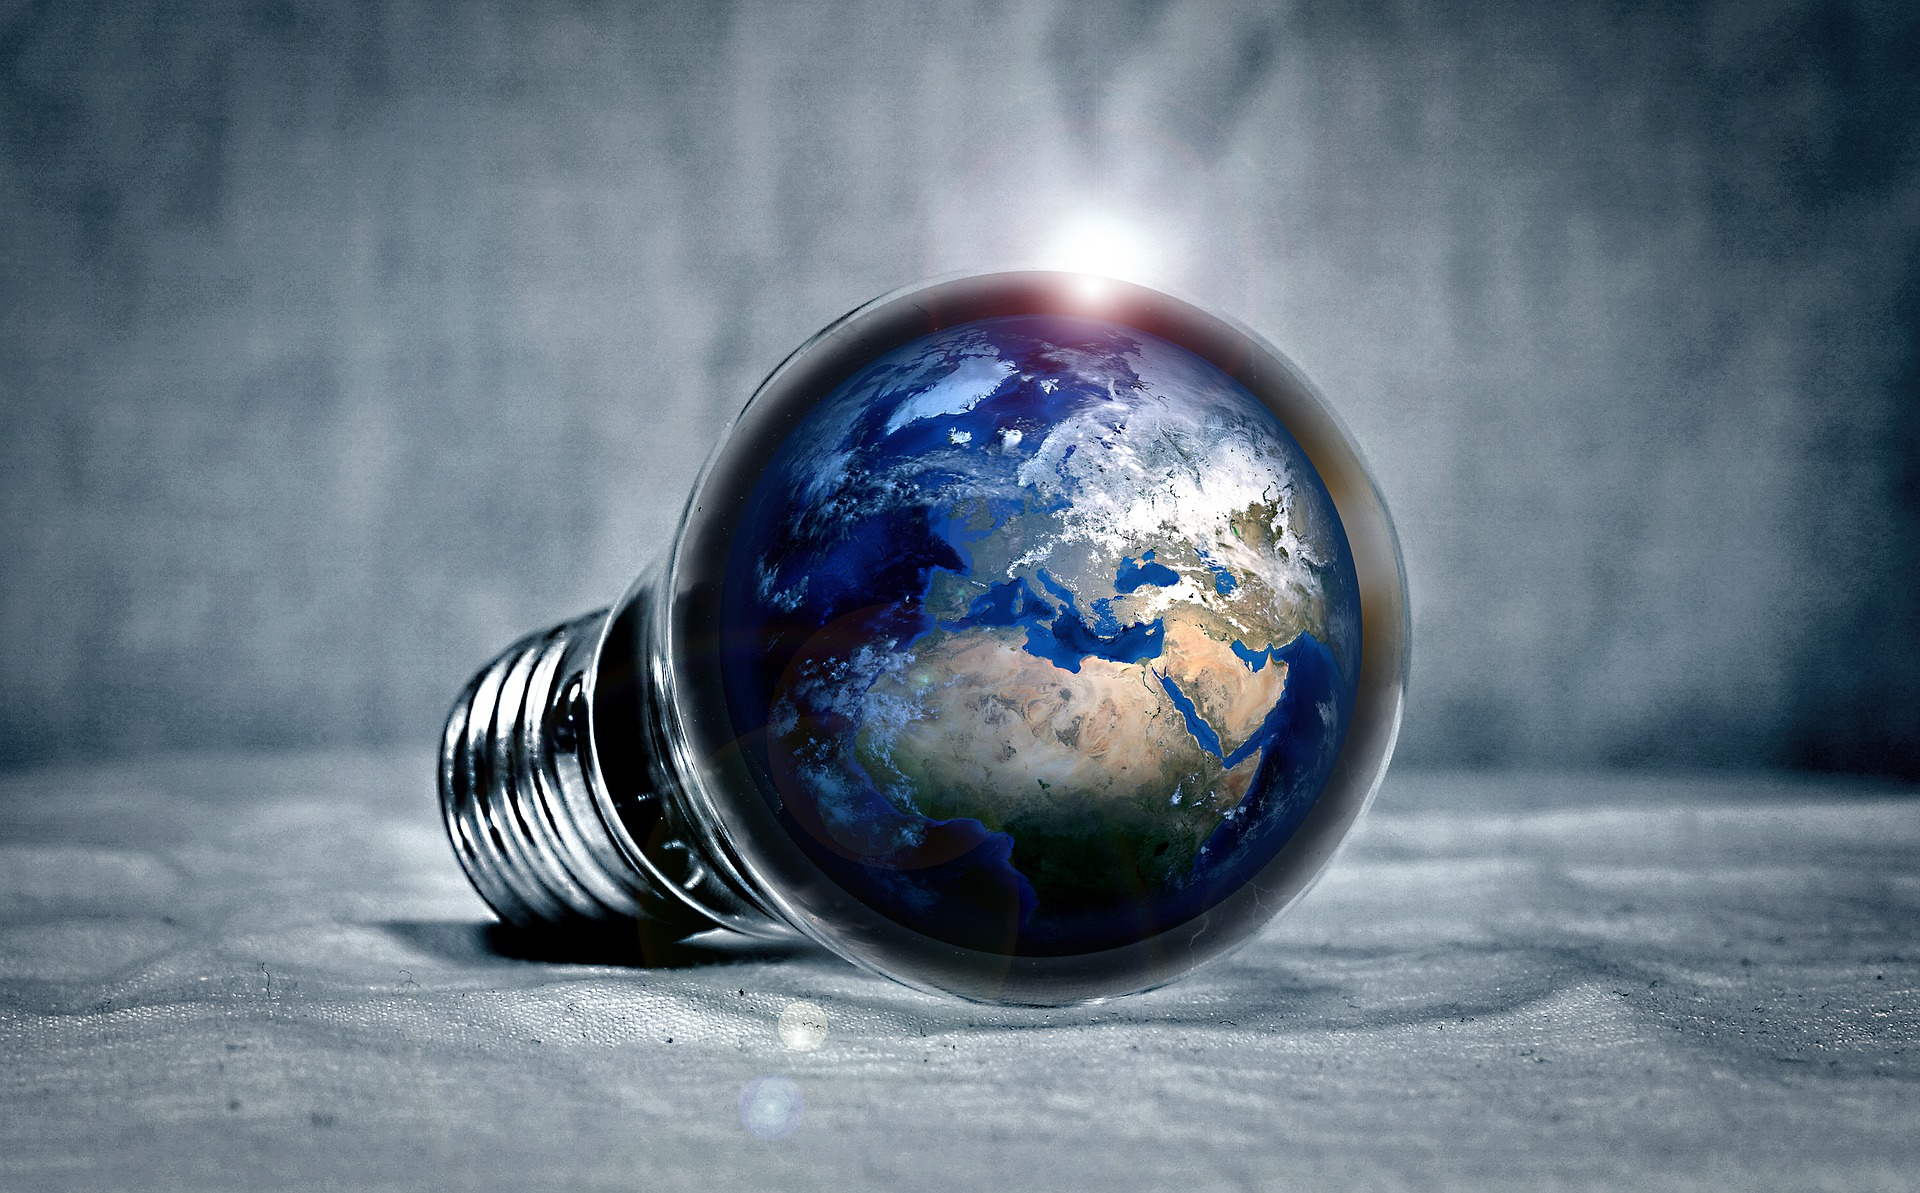 Revolution: Fungi. Planet Earth inside a lightbulb representing a new idea for better living. Enable images to view.